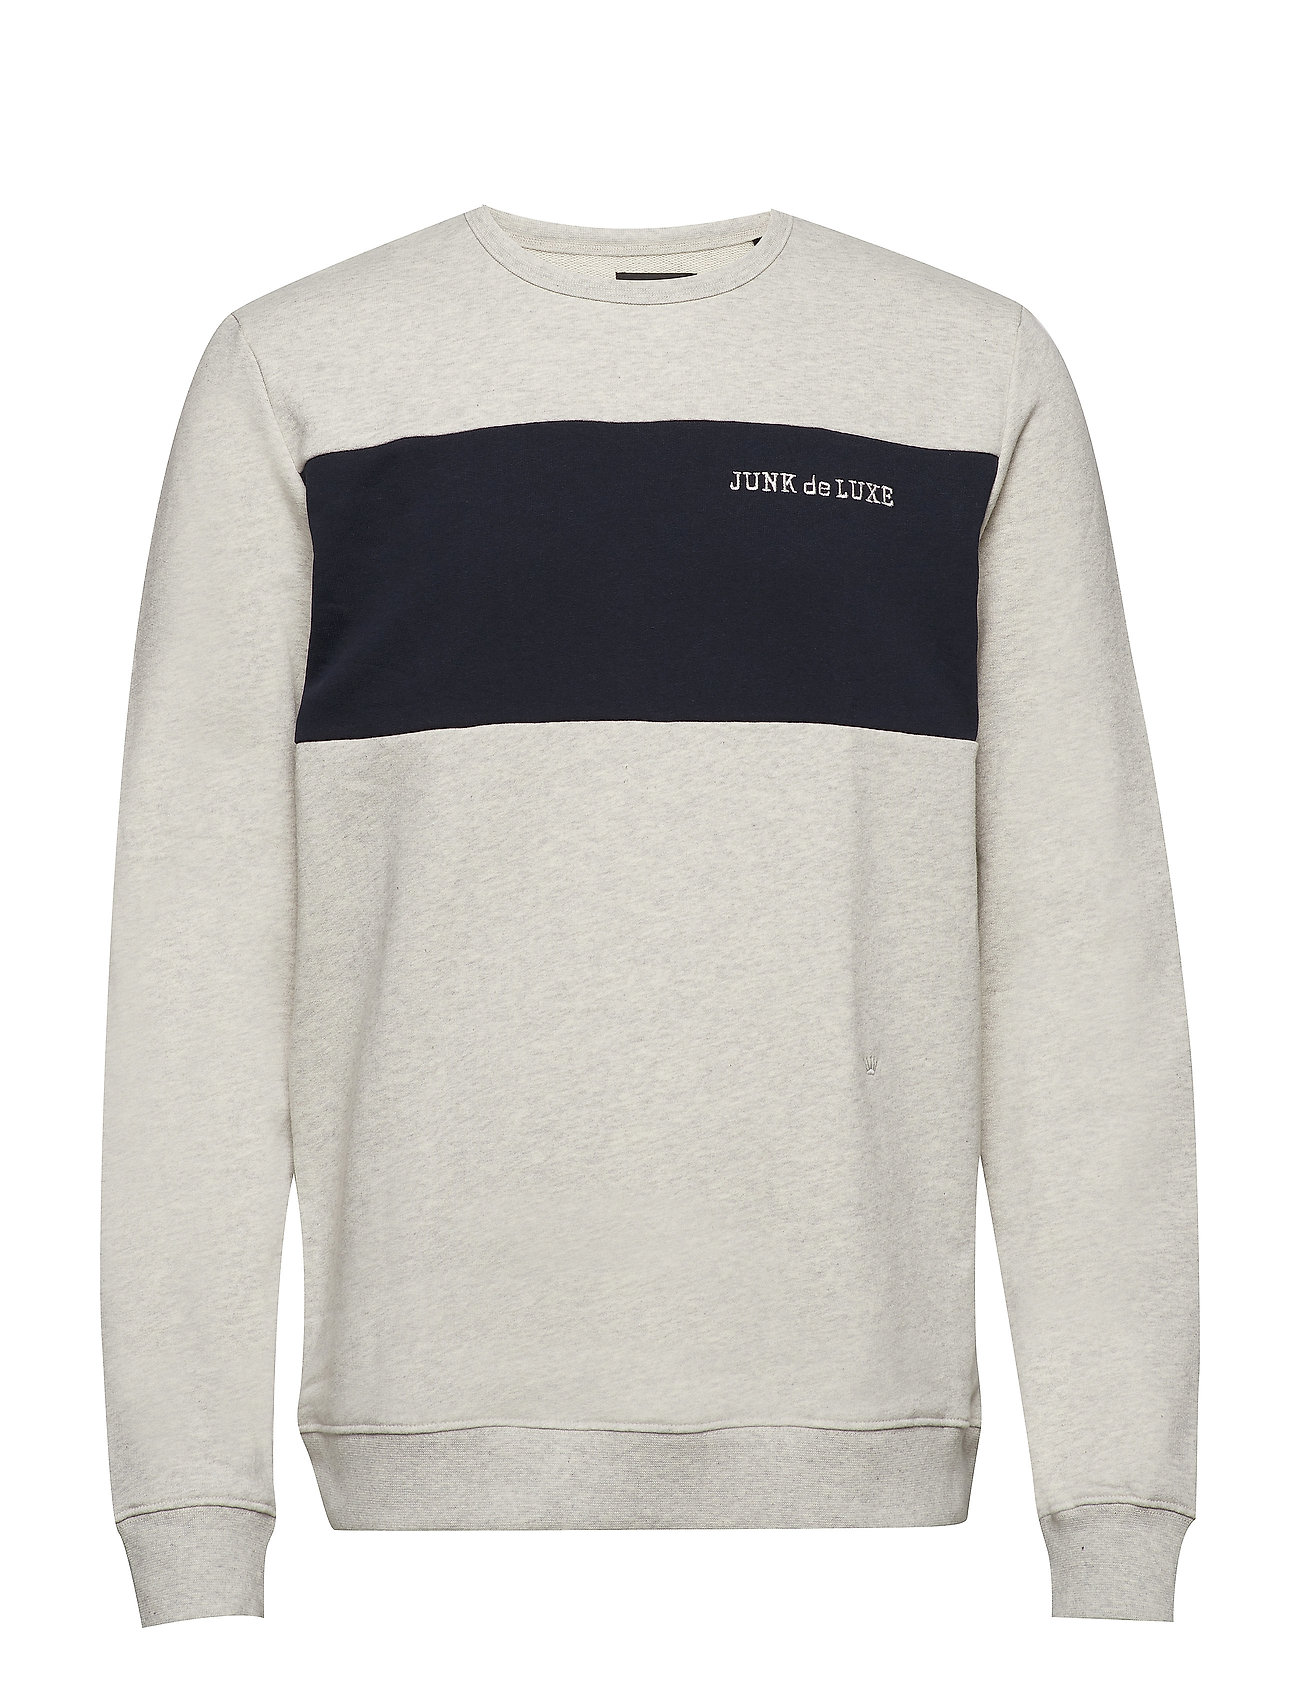 JUNK de LUXE Contrast panel sweat - LT GREY MEL